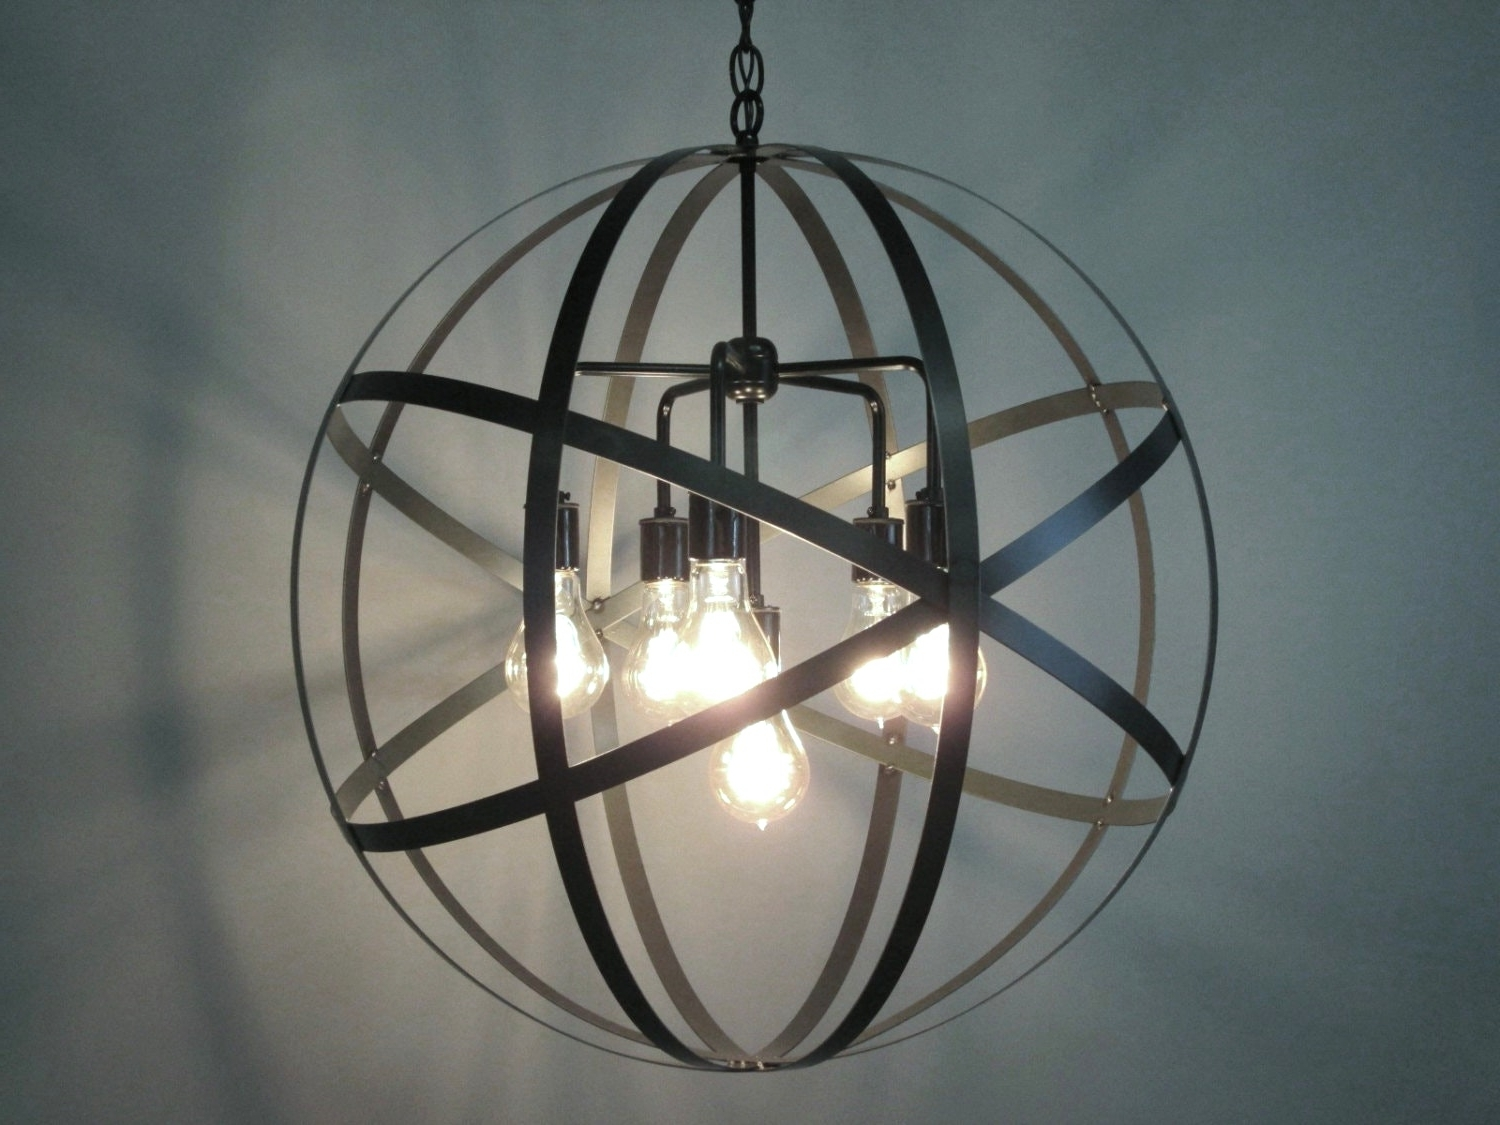 Industrial Orb Chandelier Ceiling Light Sphere 24 With Clear Glass In Fashionable Orb Chandelier (View 11 of 15)